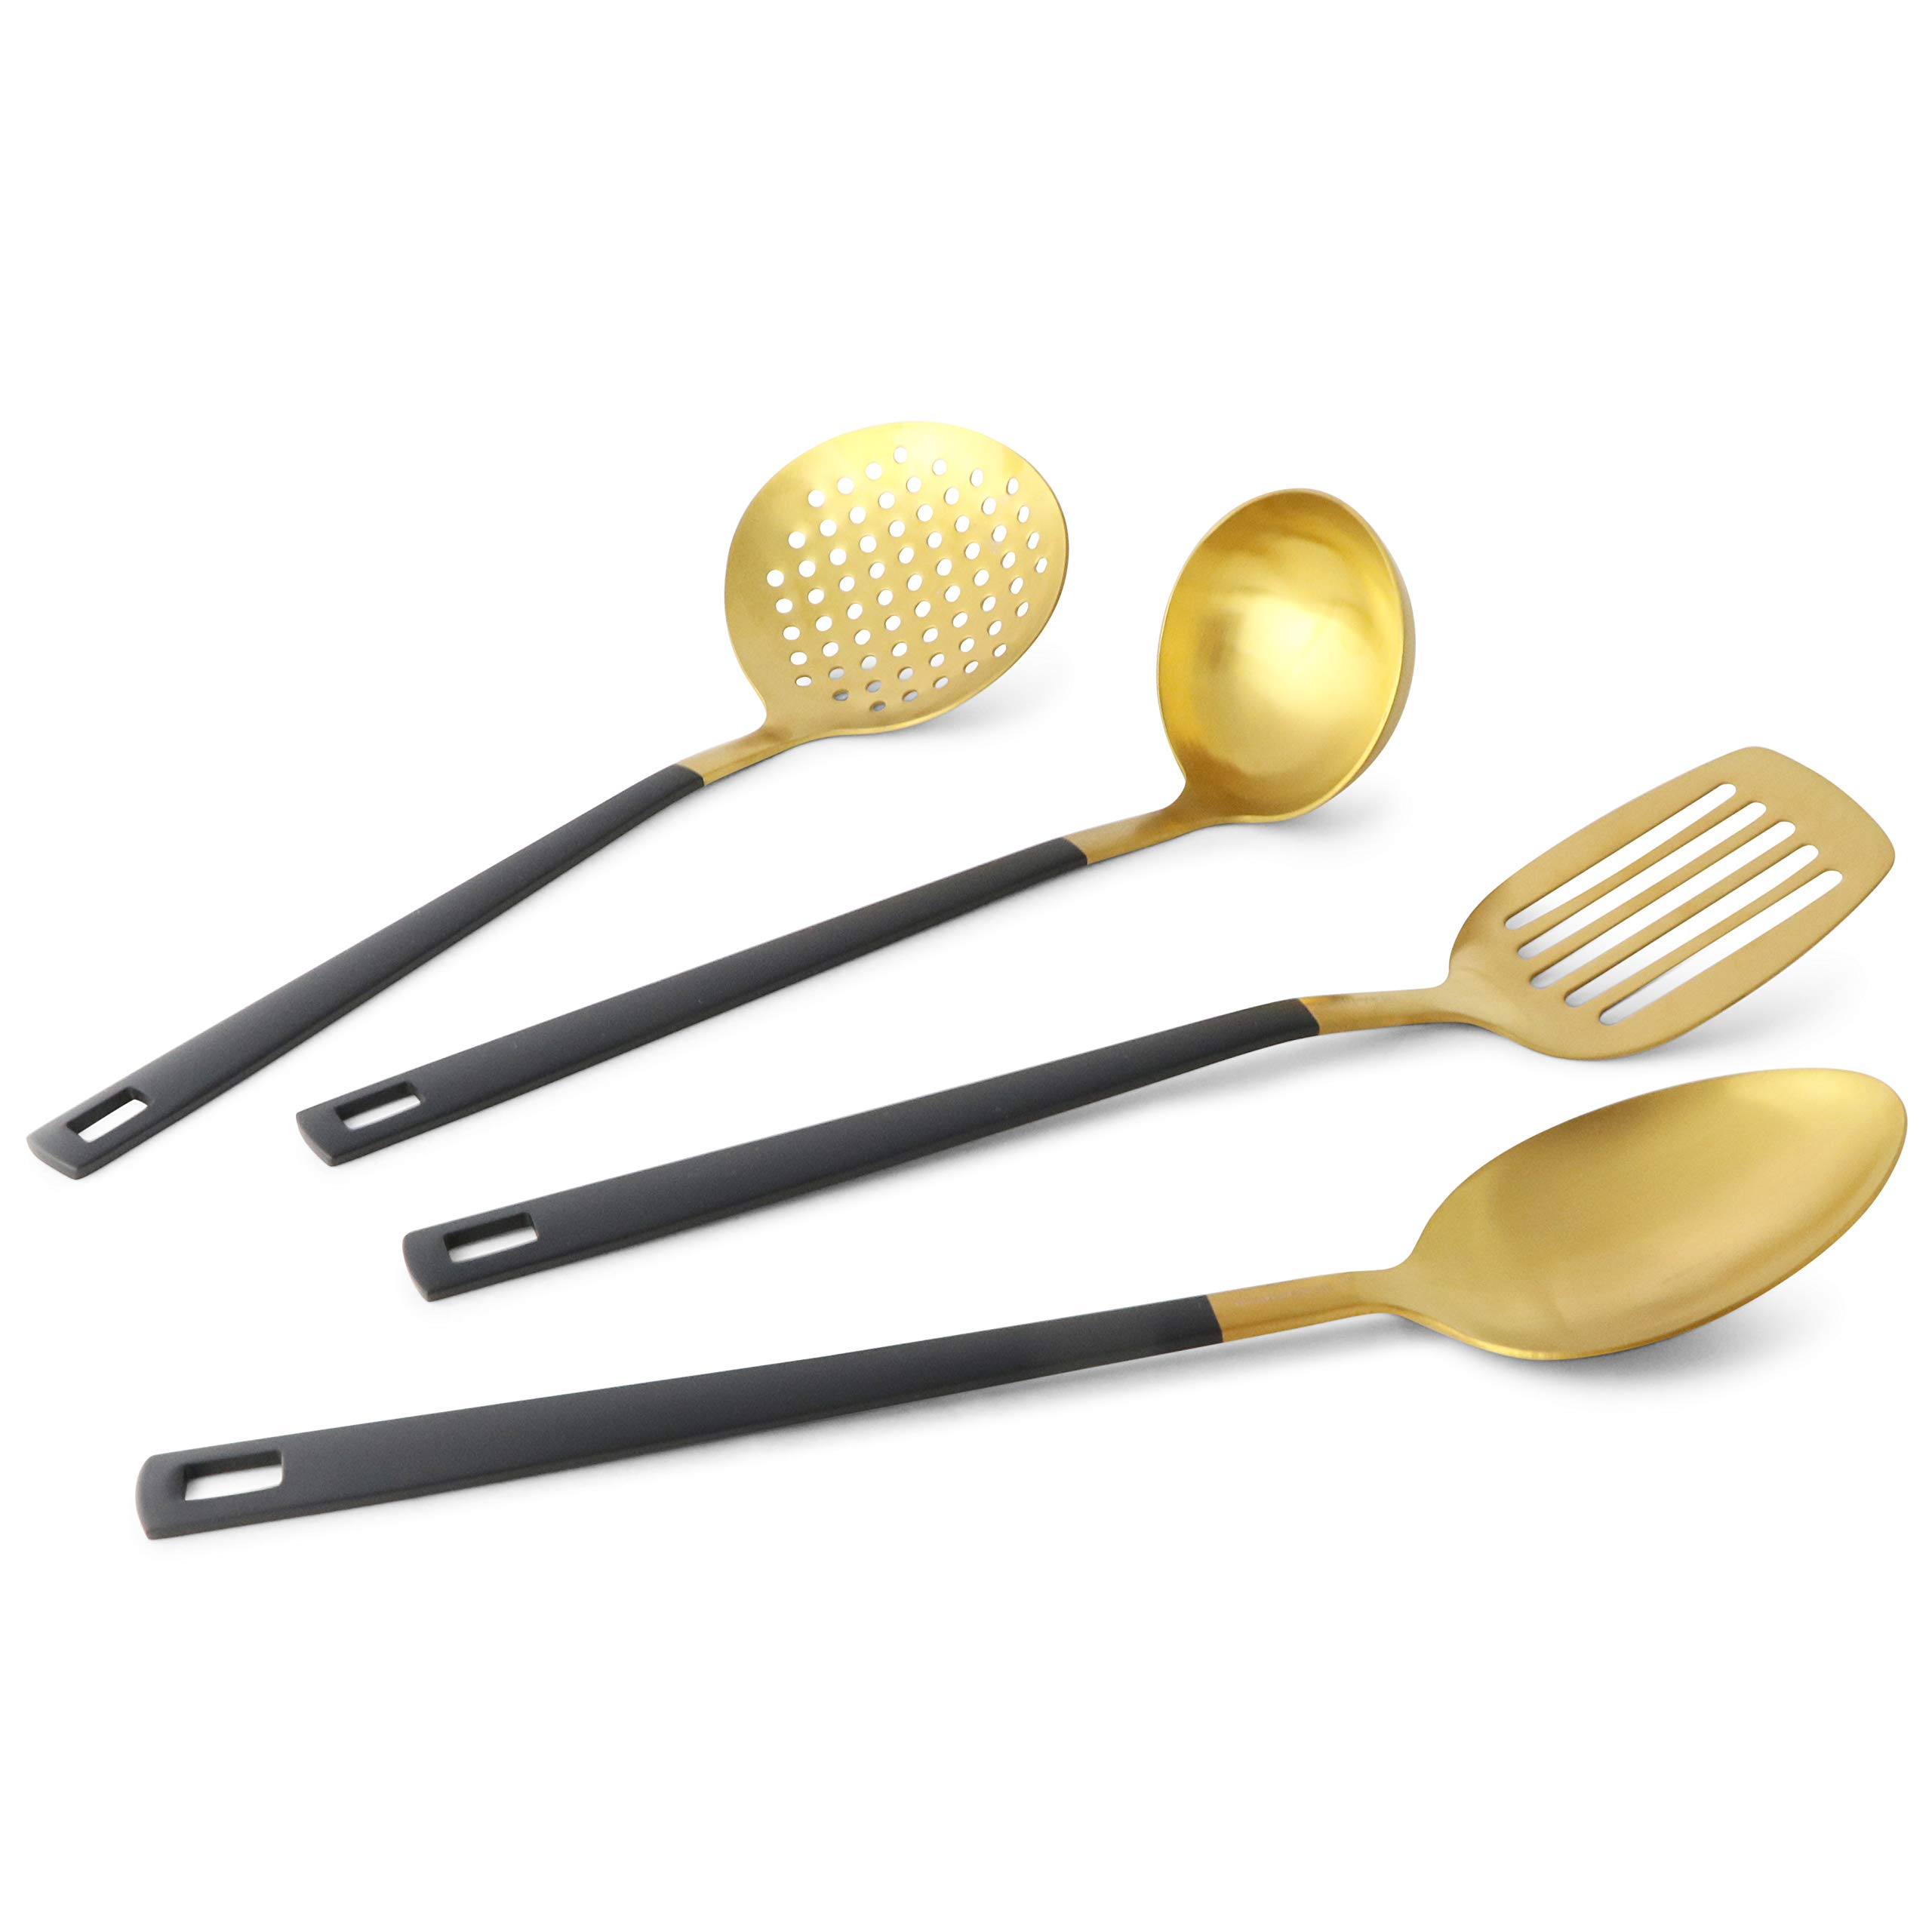 Black and Gold Utensil Set for Cooking and Serving, Stainless Steel Serving Utensils include - Black and Gold Metal Ladle, Skimmer, Serving Spoon, Turner: Gold Serving Sets by STYLED SETTINGS (Image #4)